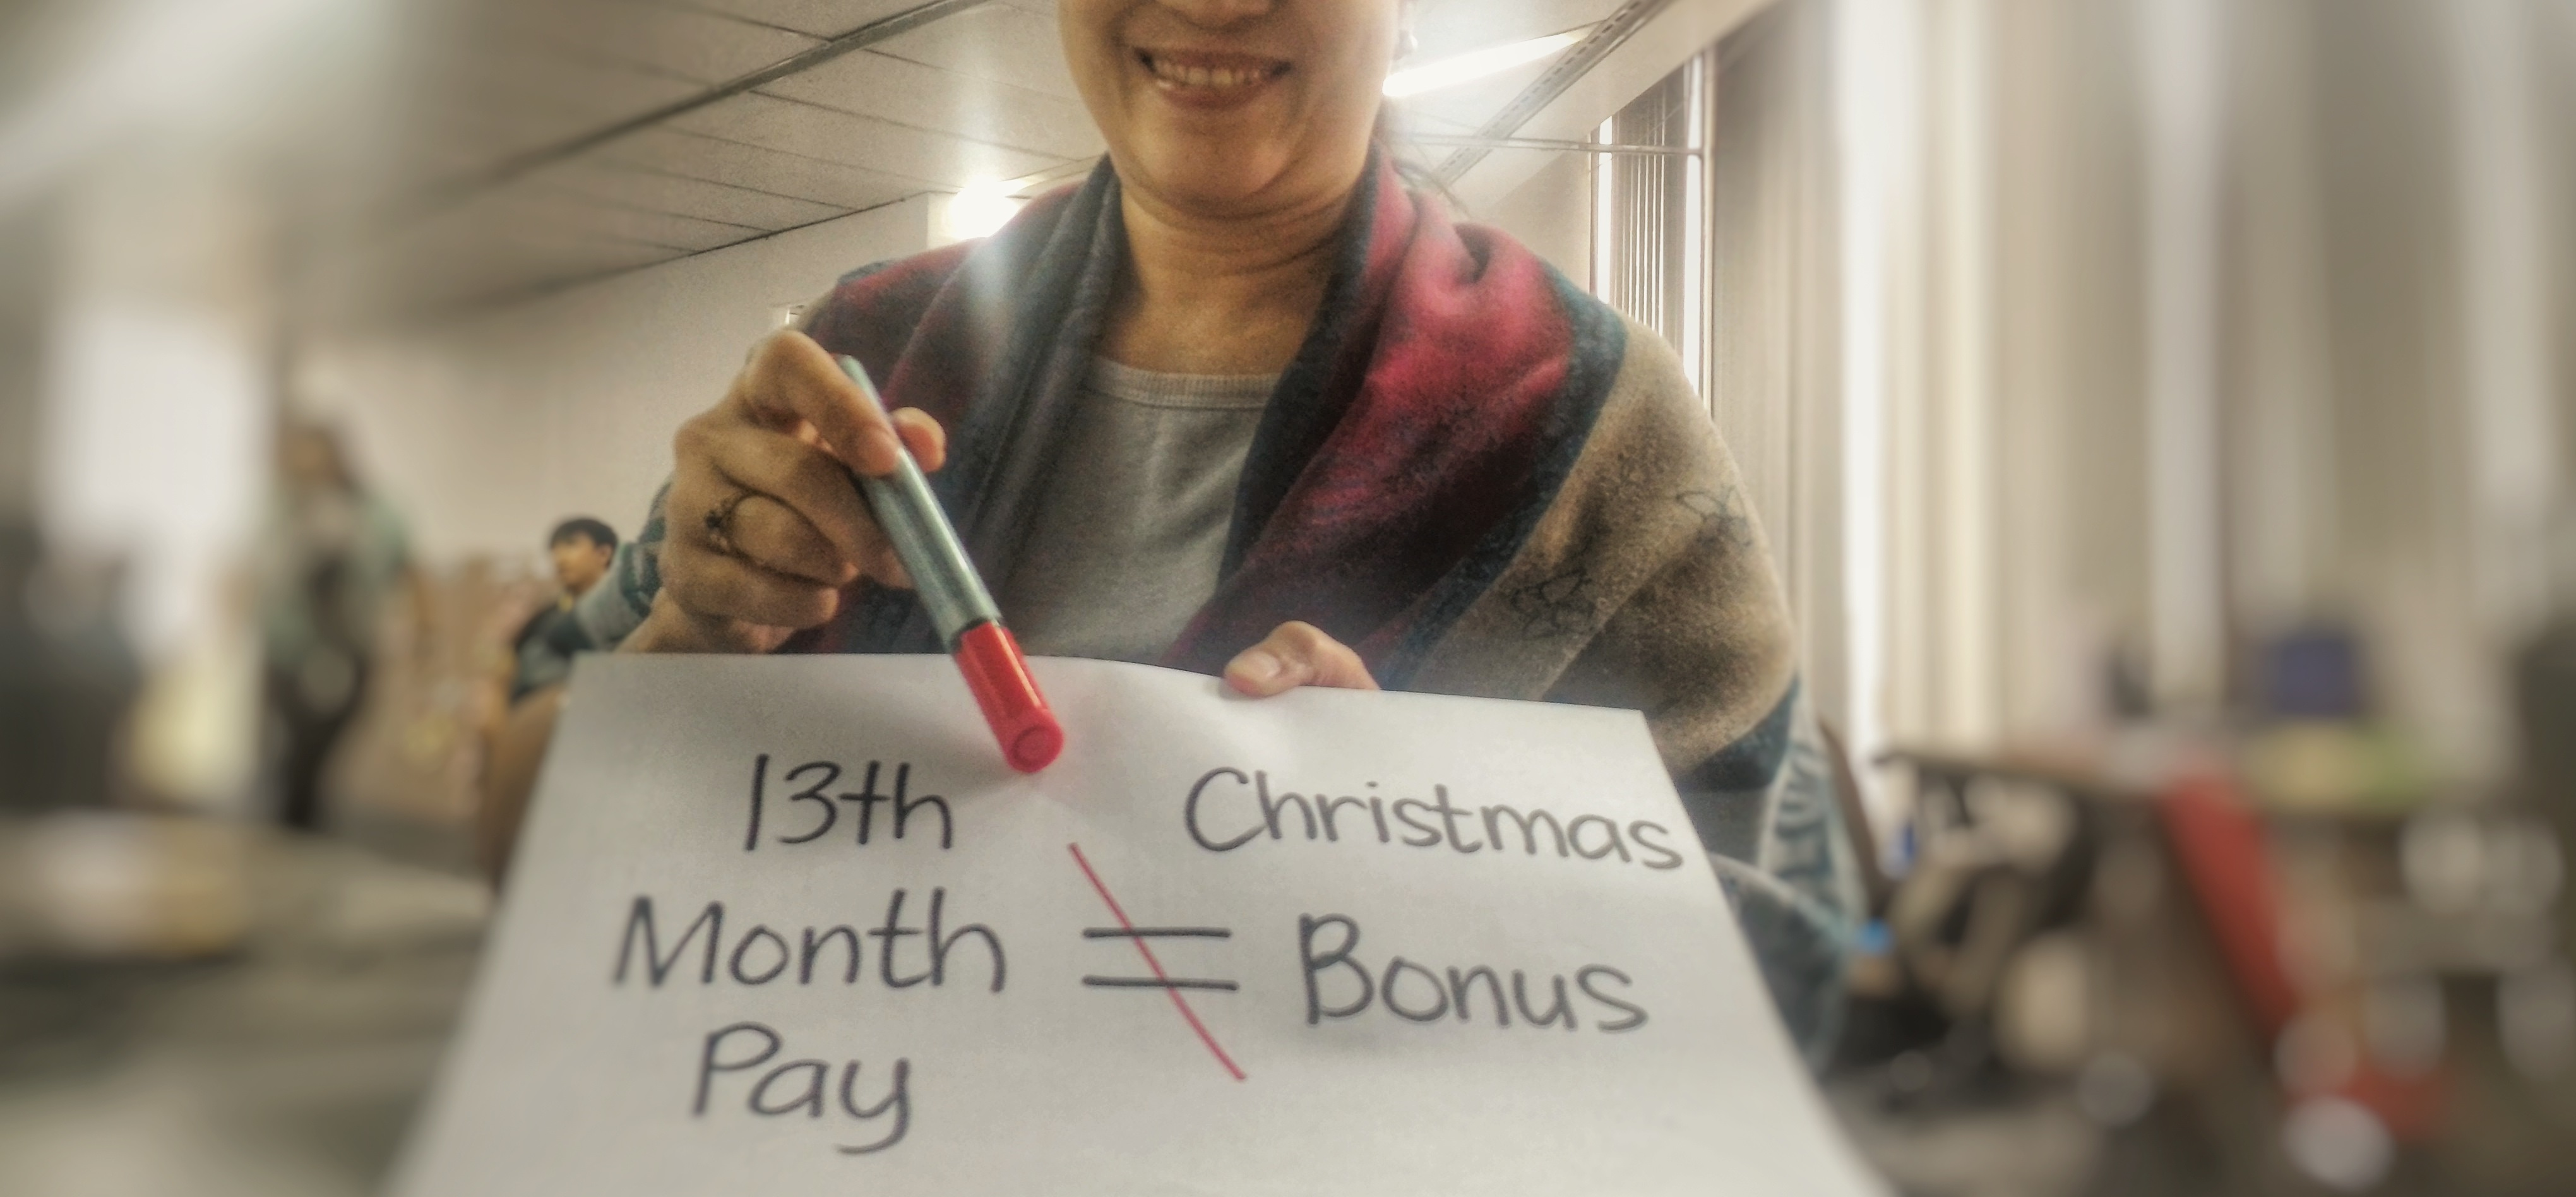 Why the 13th Month Pay is Not the Same as the Christmas Bonus